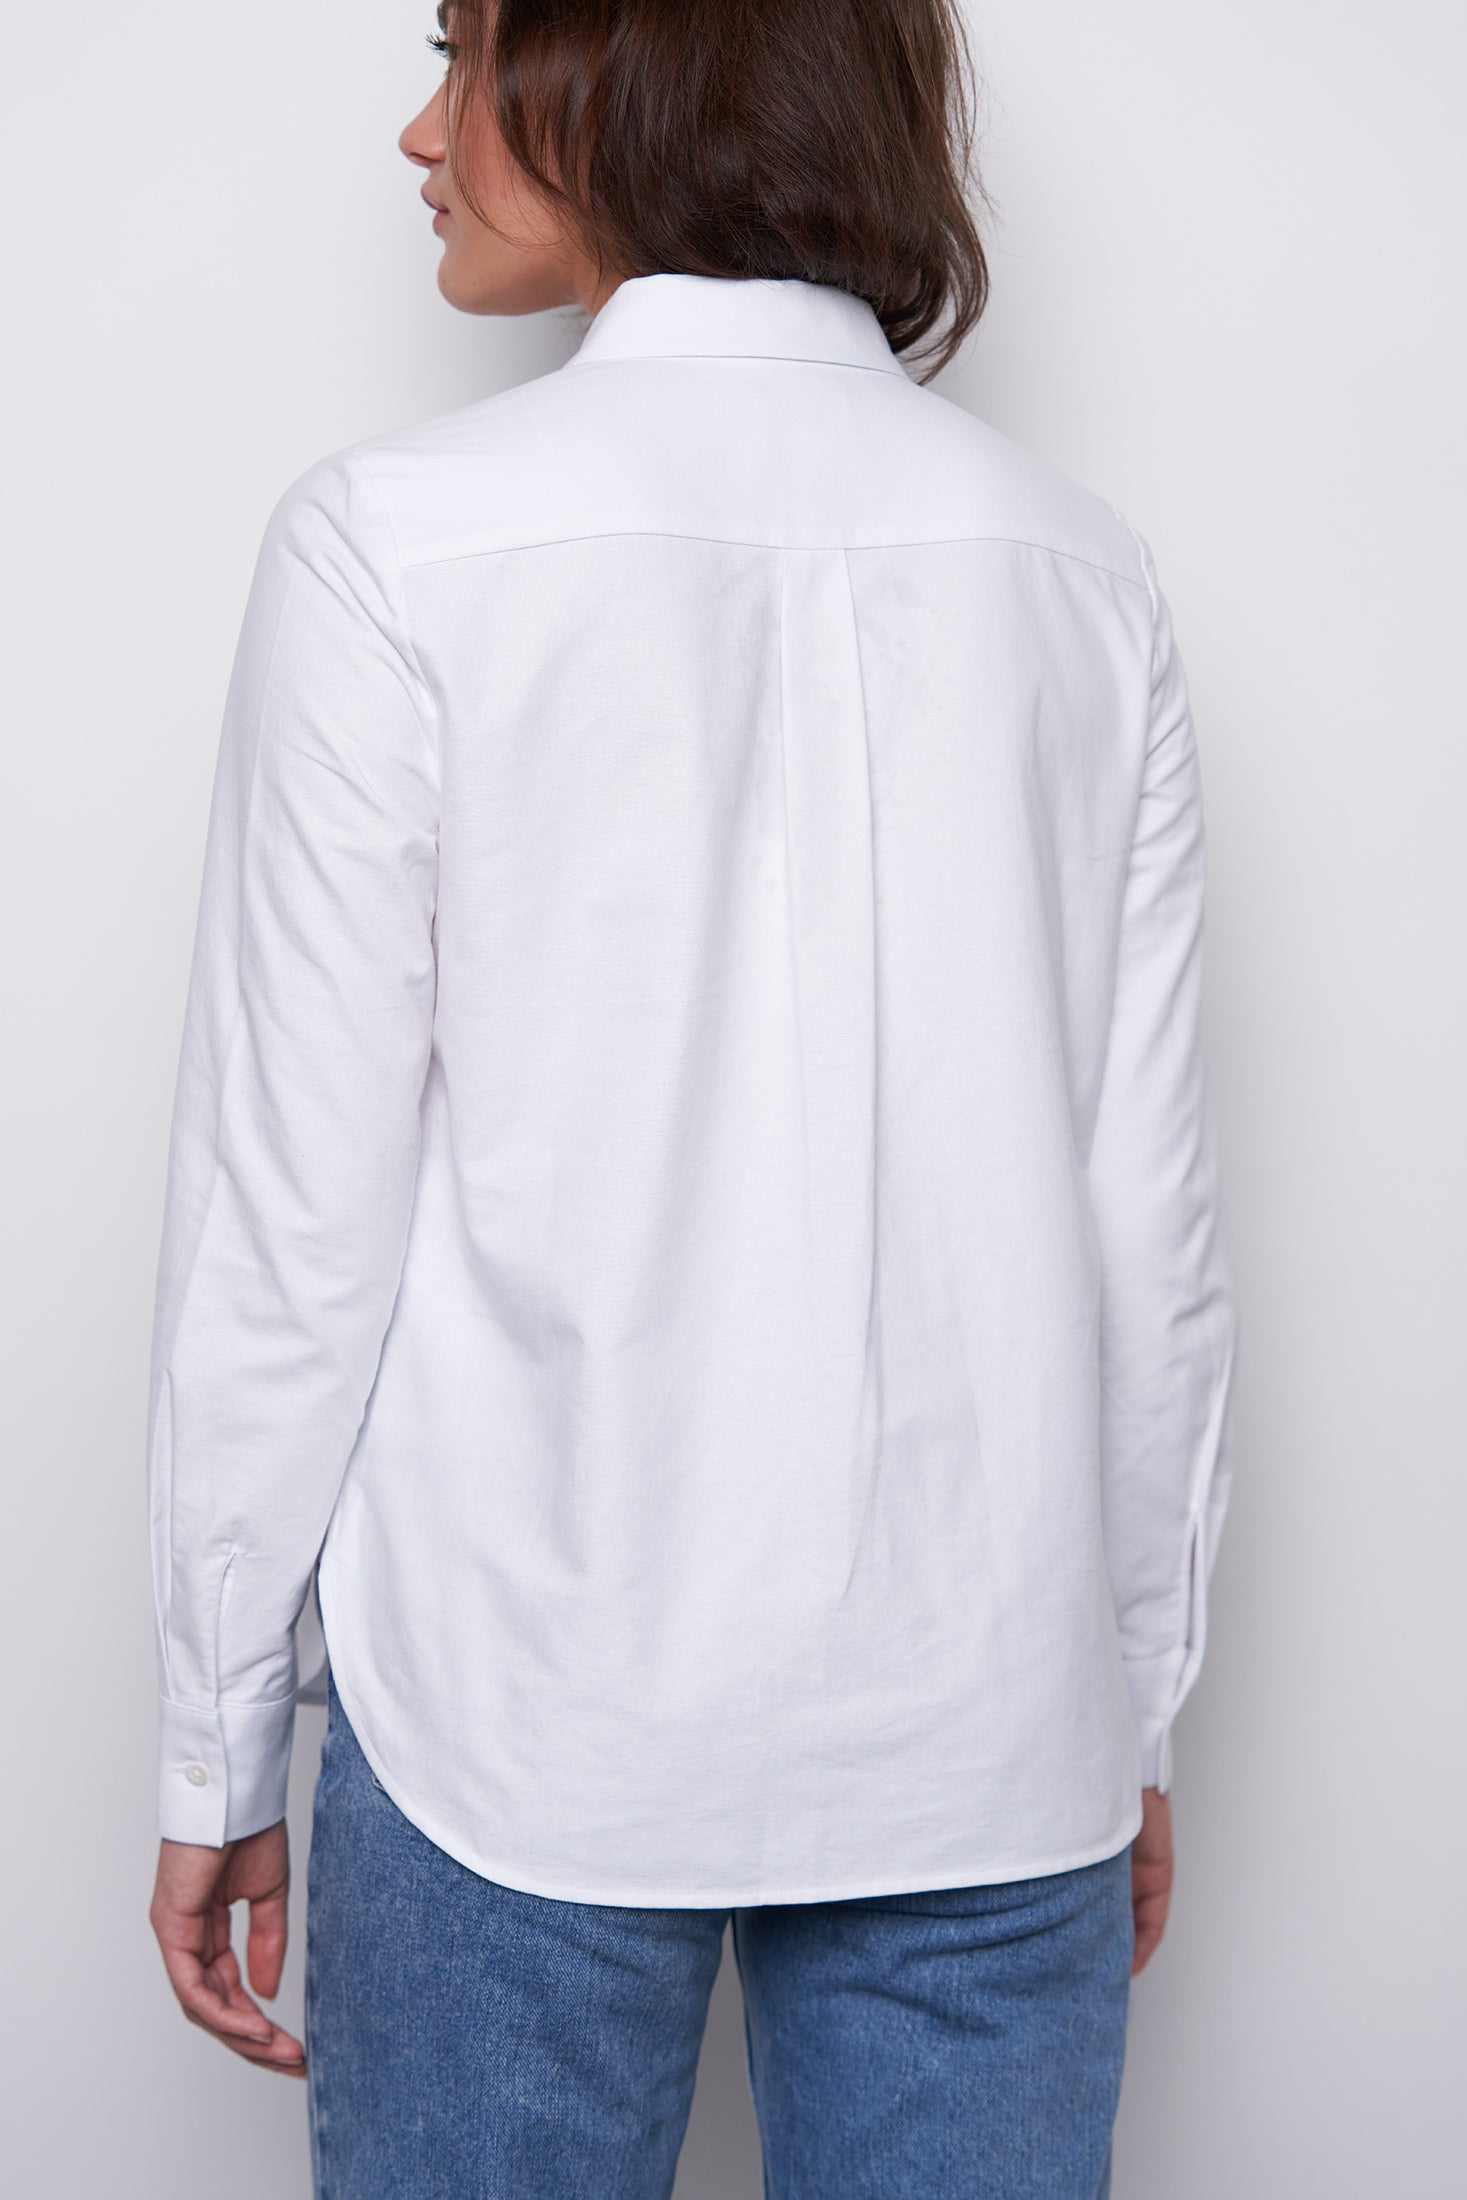 Chaperche Shirt - White-4